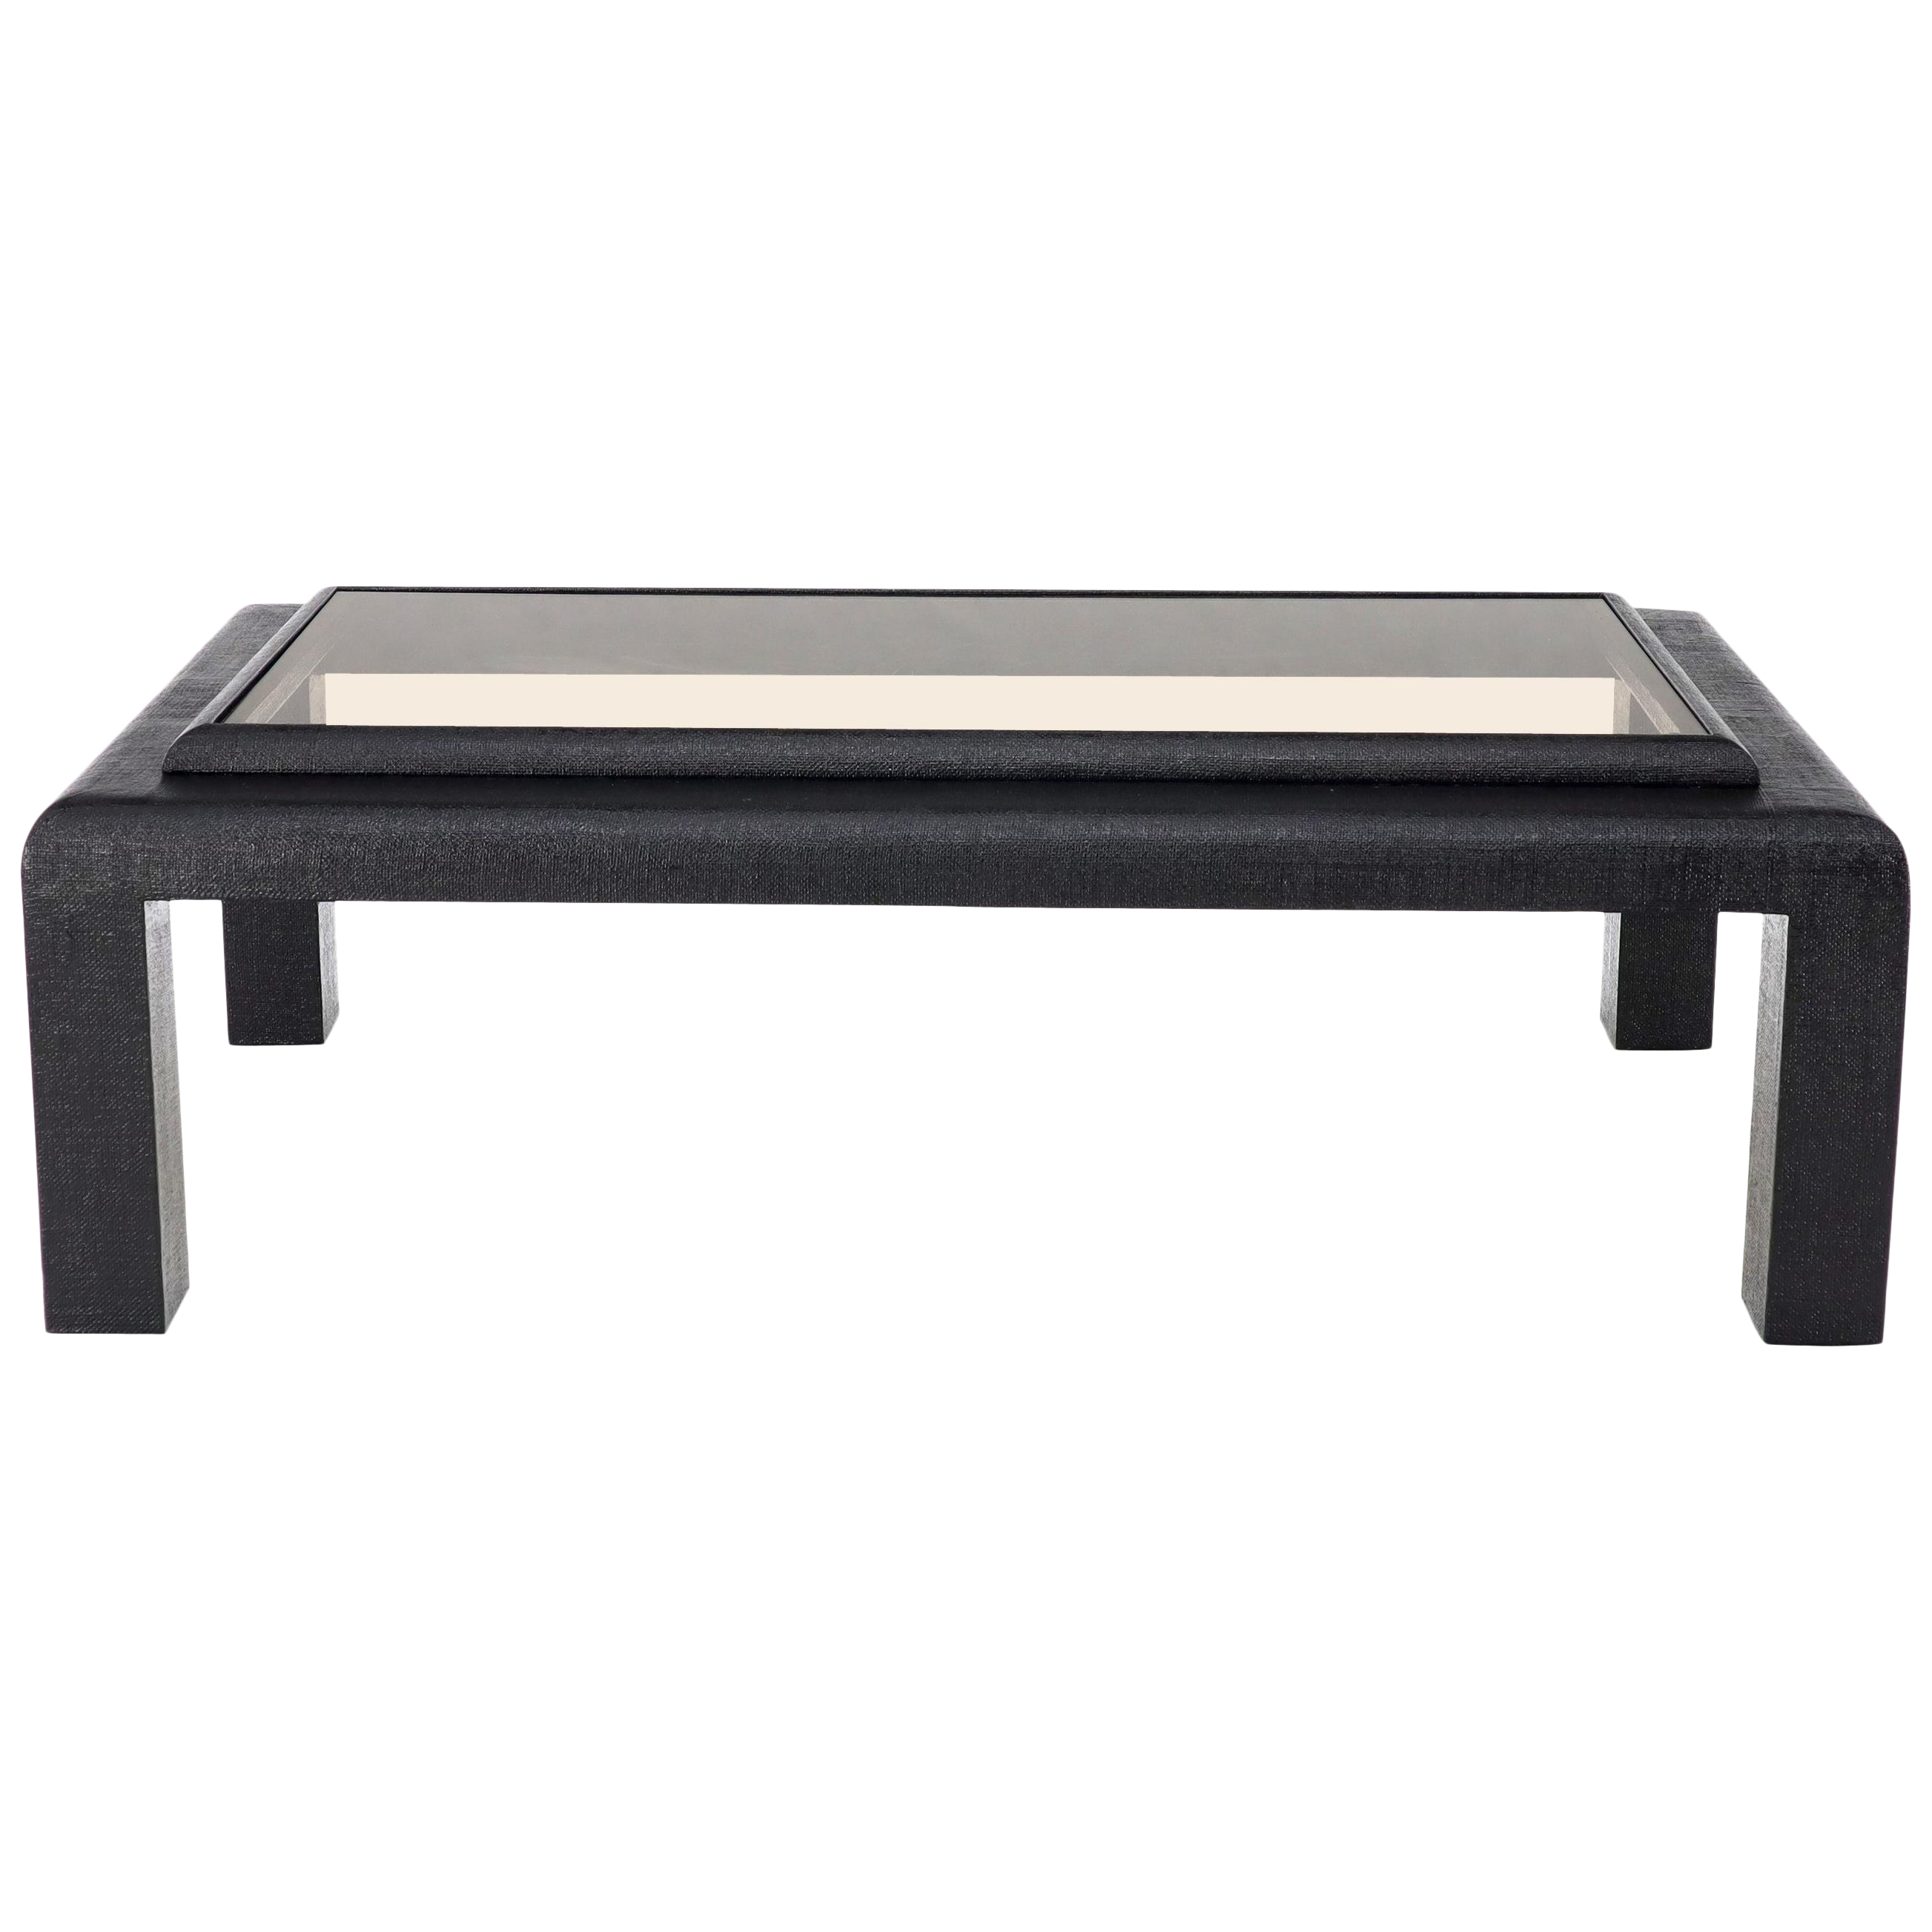 Cloth Wrapped Black Lacquer Glass Top Rectangular Coffee Table Rectangular Coffee Table Coffee Table Cloth Coffee Table [ 2606 x 2606 Pixel ]